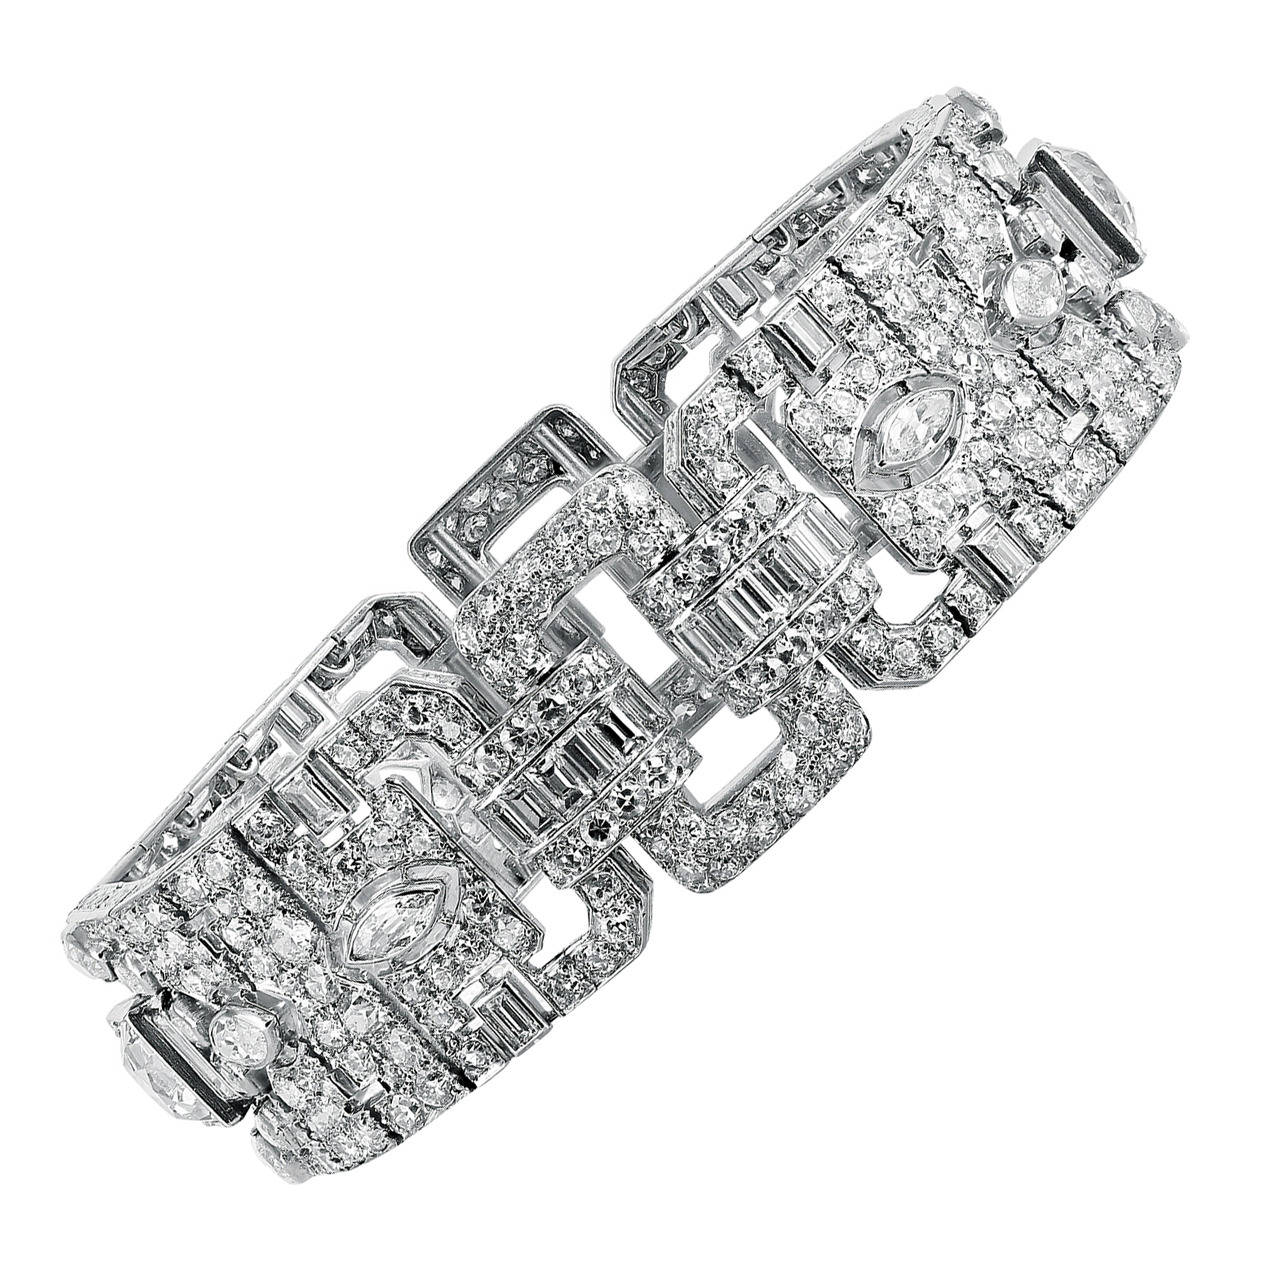 Lacloche Freres Art Deco Diamond Platinum Bracelet For